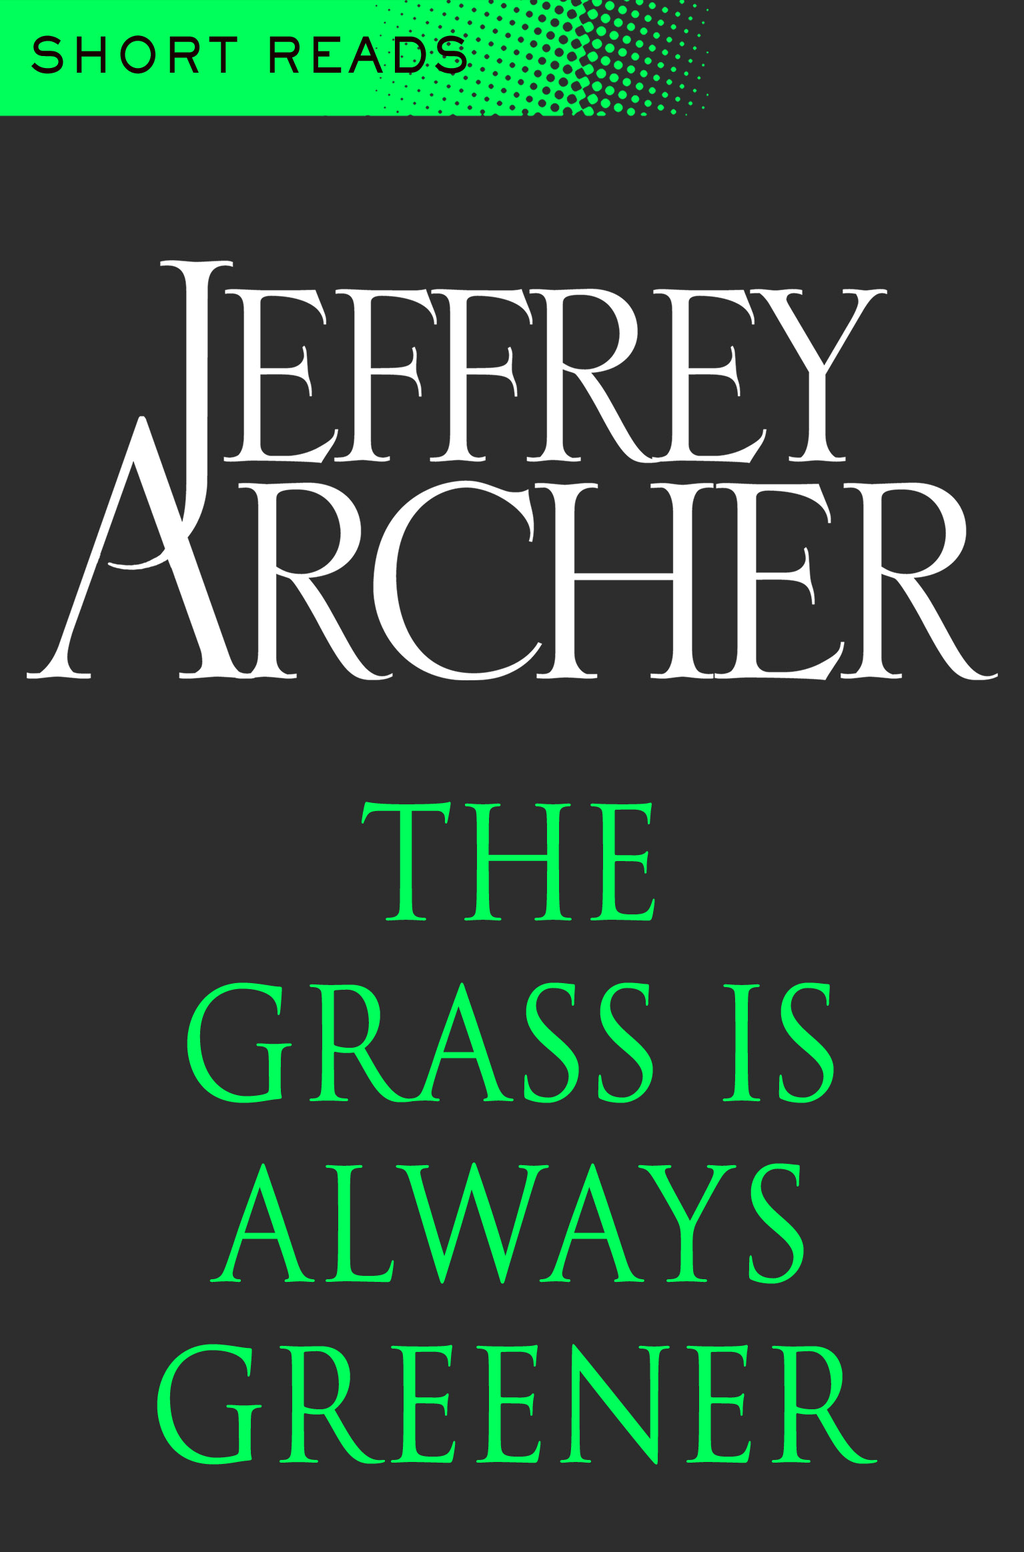 The Grass is Always Greener (Short Reads)